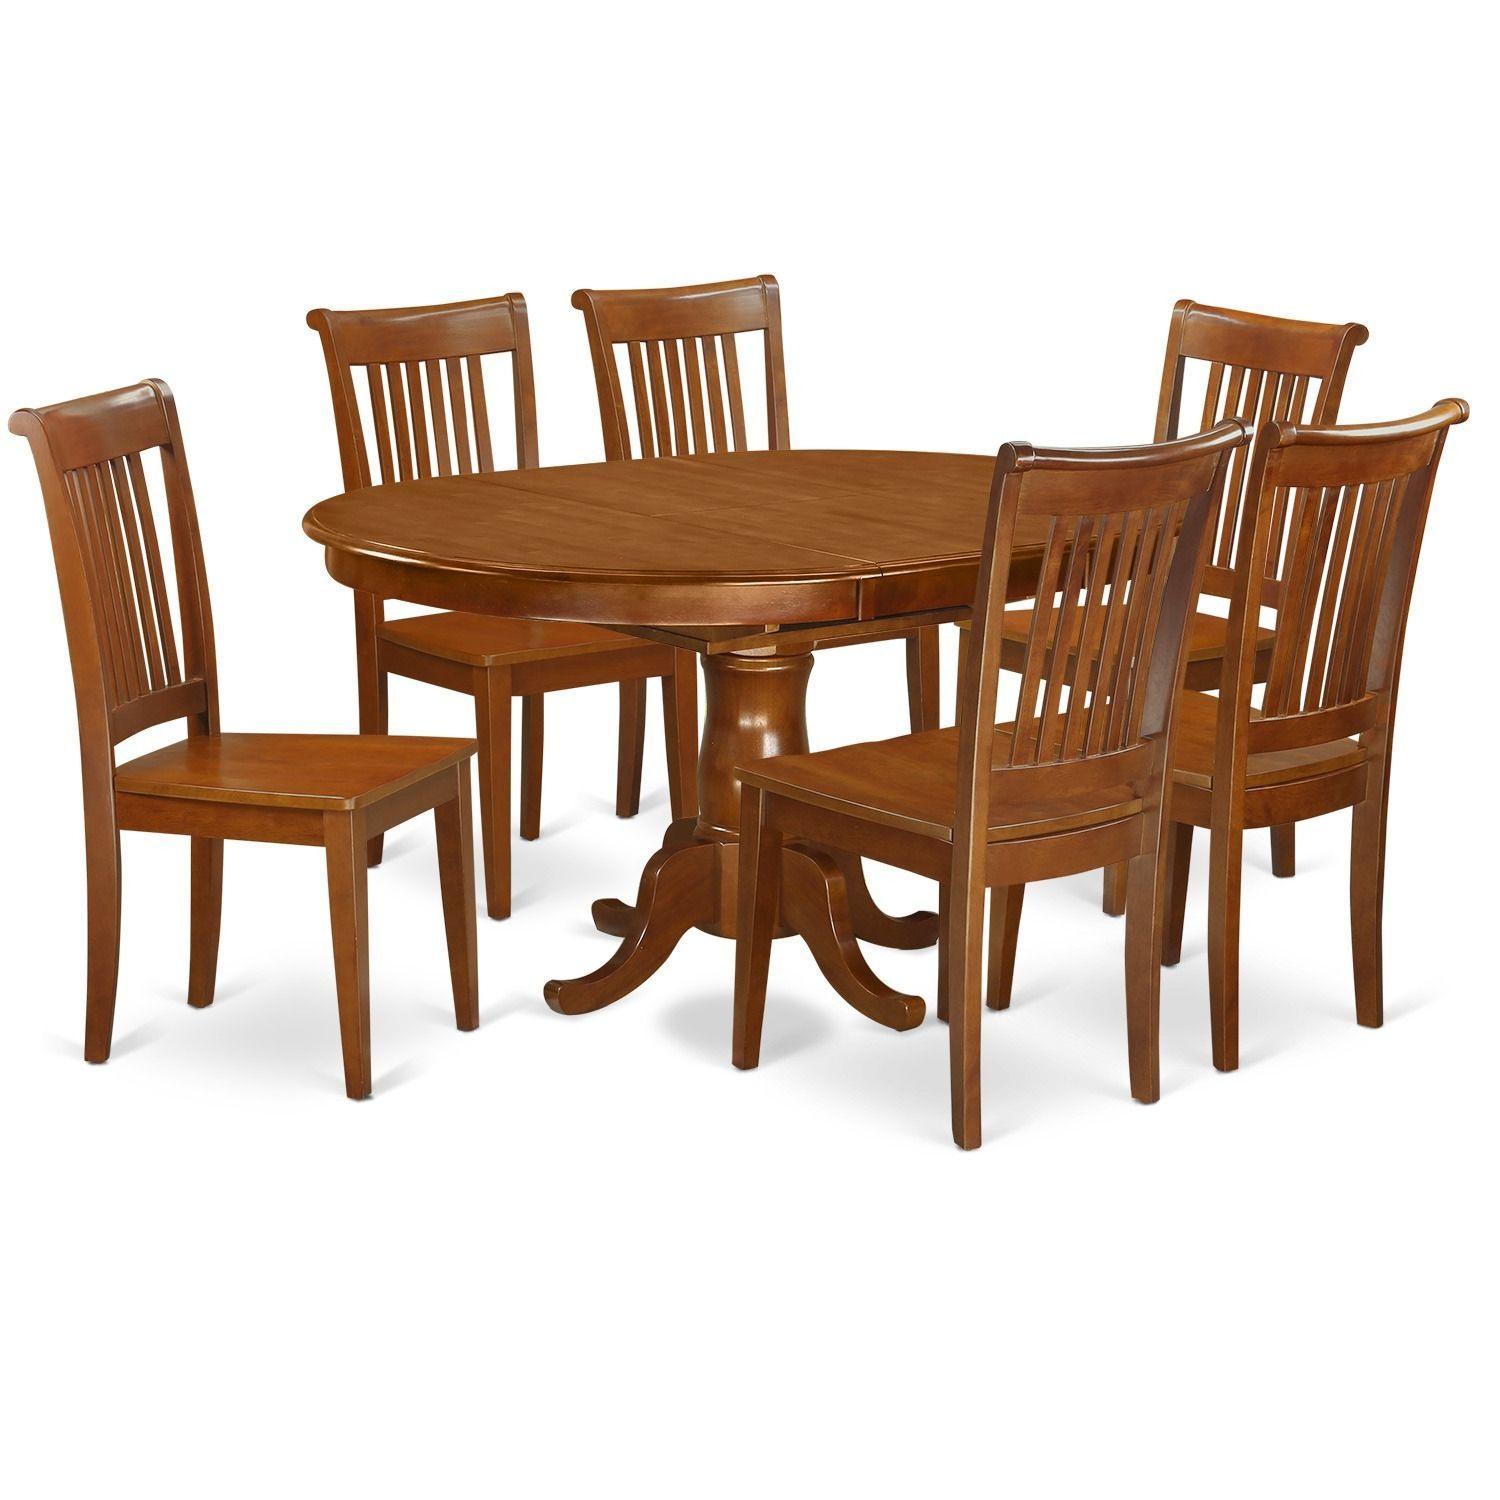 7-piece Oval Dining Table with Leaf and 6 Dining Chairs (Microfiber ...